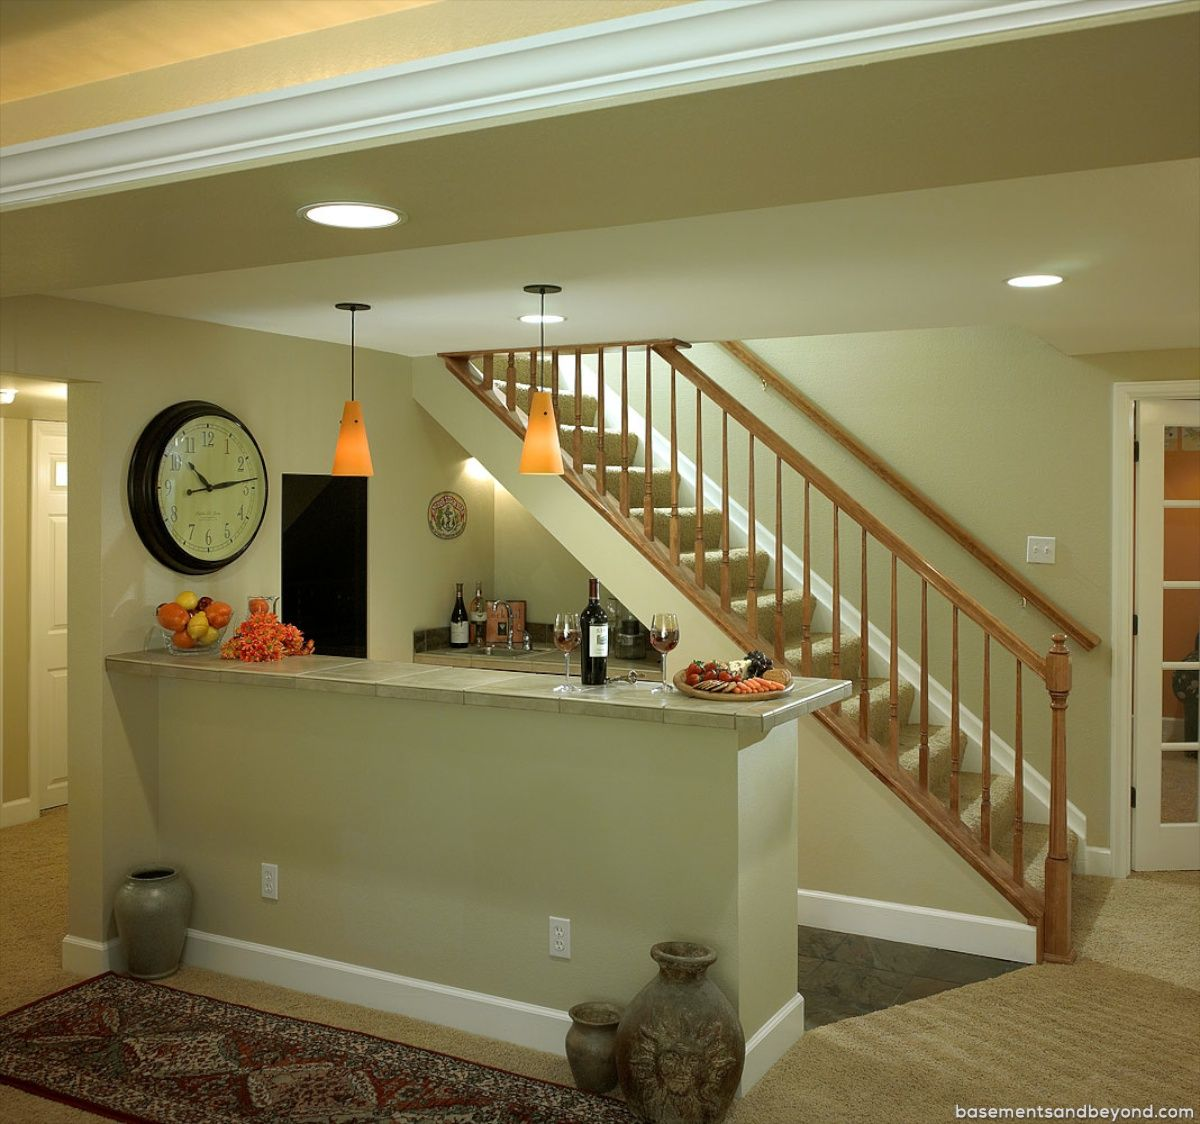 Basement Stair Designs Plans: Wet Bar Includes Cabinetry Tucked